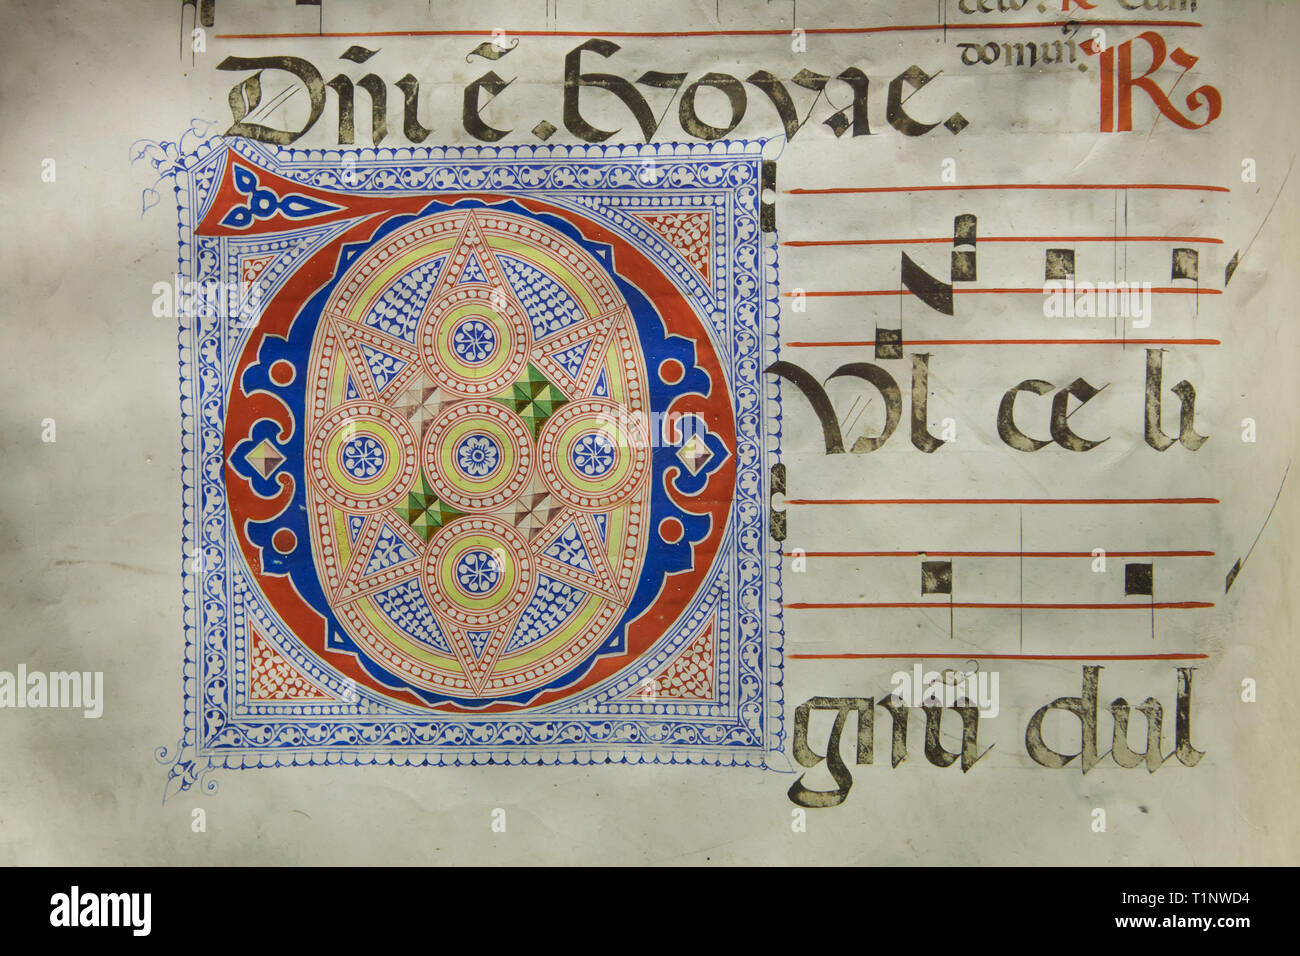 Illuminated initial by Florentine manuscript illuminators Zanobi Strozzi and Filippo di Matteo Torelli in the Antiphonary G dated from 1447 on display in the Monastery Library in the San Marco Museum (Museo Nazionale di San Marco) in Florence, Tuscany, Italy. - Stock Image